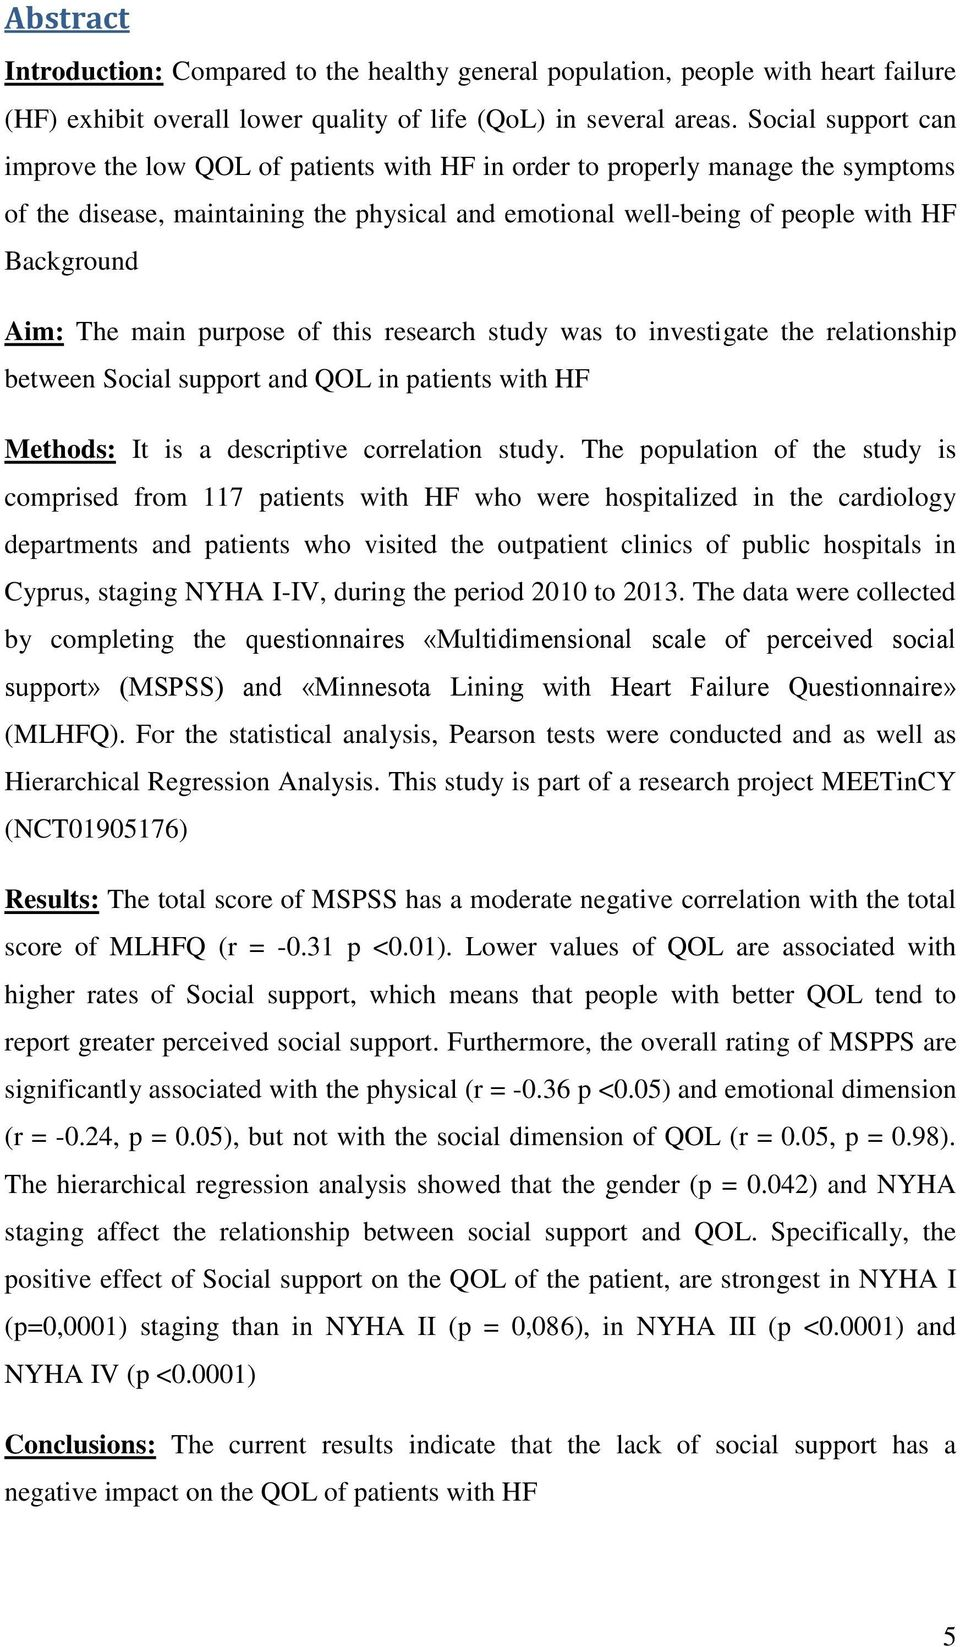 The main purpose of this research study was to investigate the relationship between Social support and QOL in patients with HF Methods: It is a descriptive correlation study.